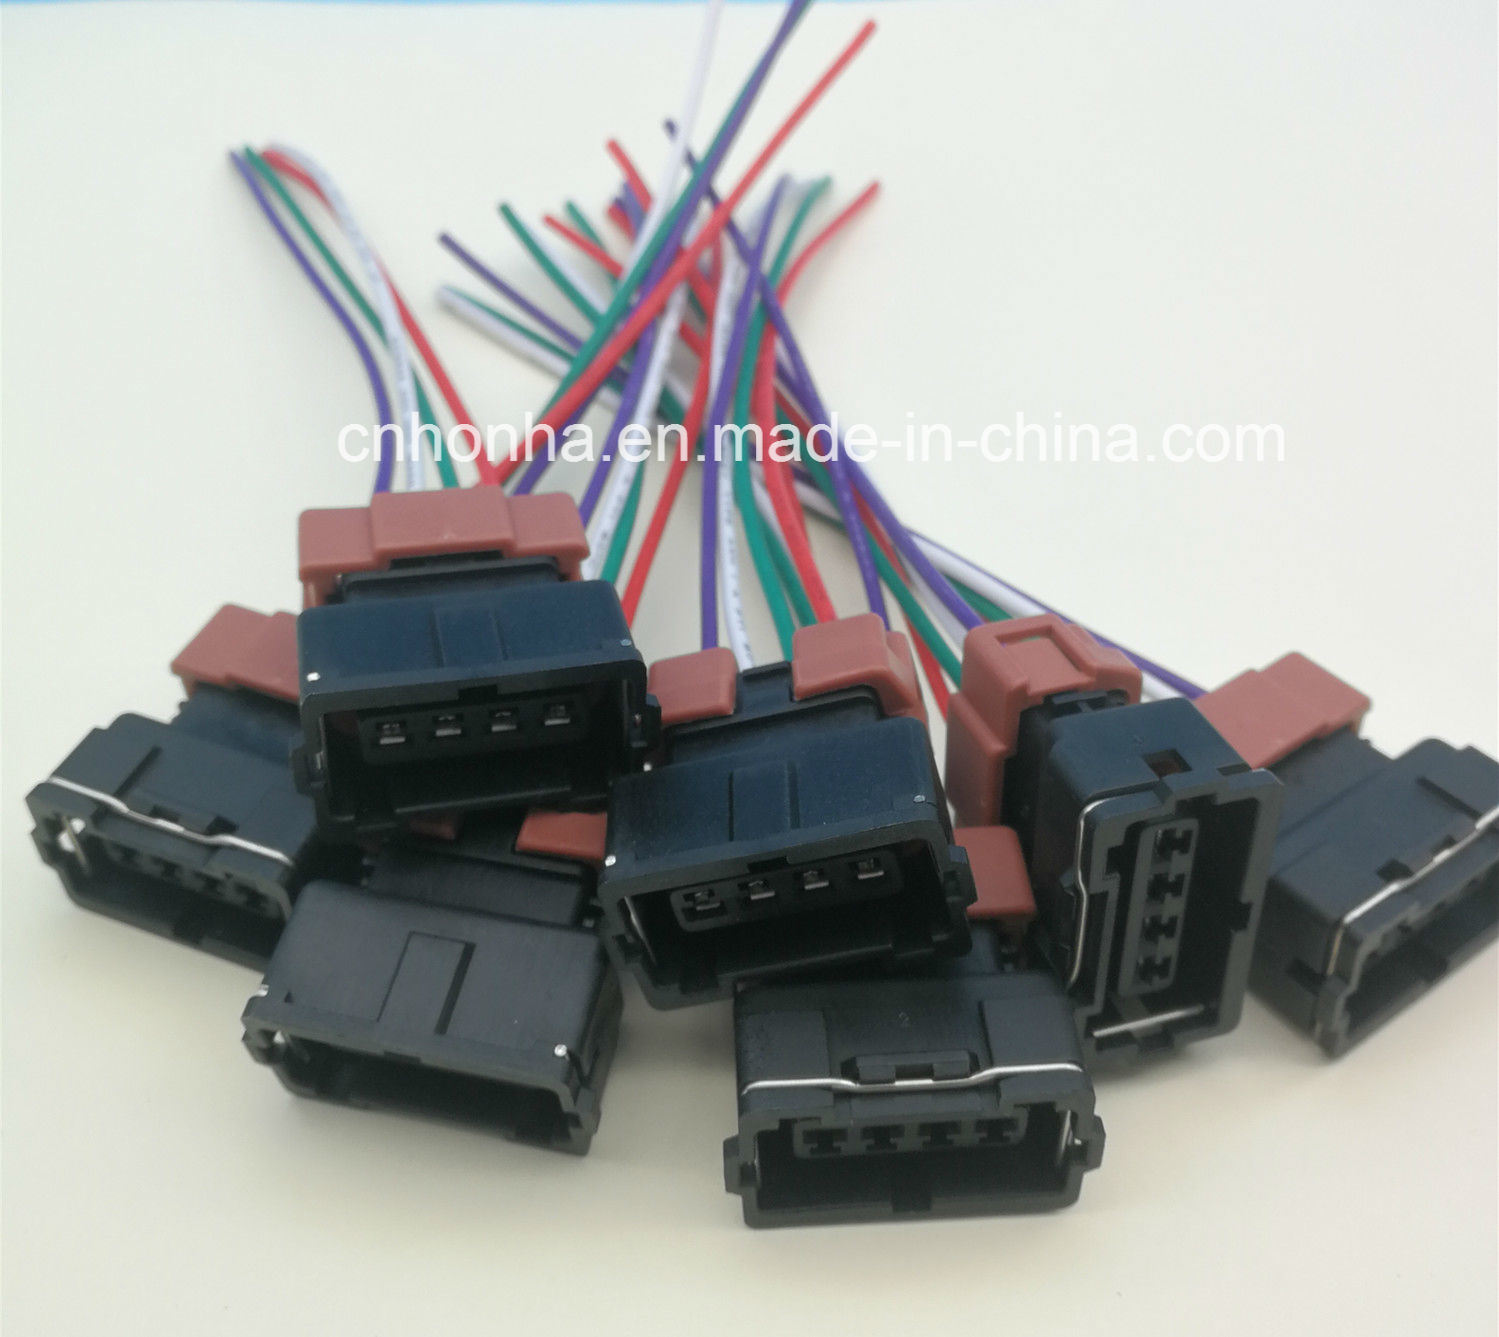 china 4 pin female toyota pbt connector wire harness for denso - china  cable wire, wire harness  honha autoparts group co., limited